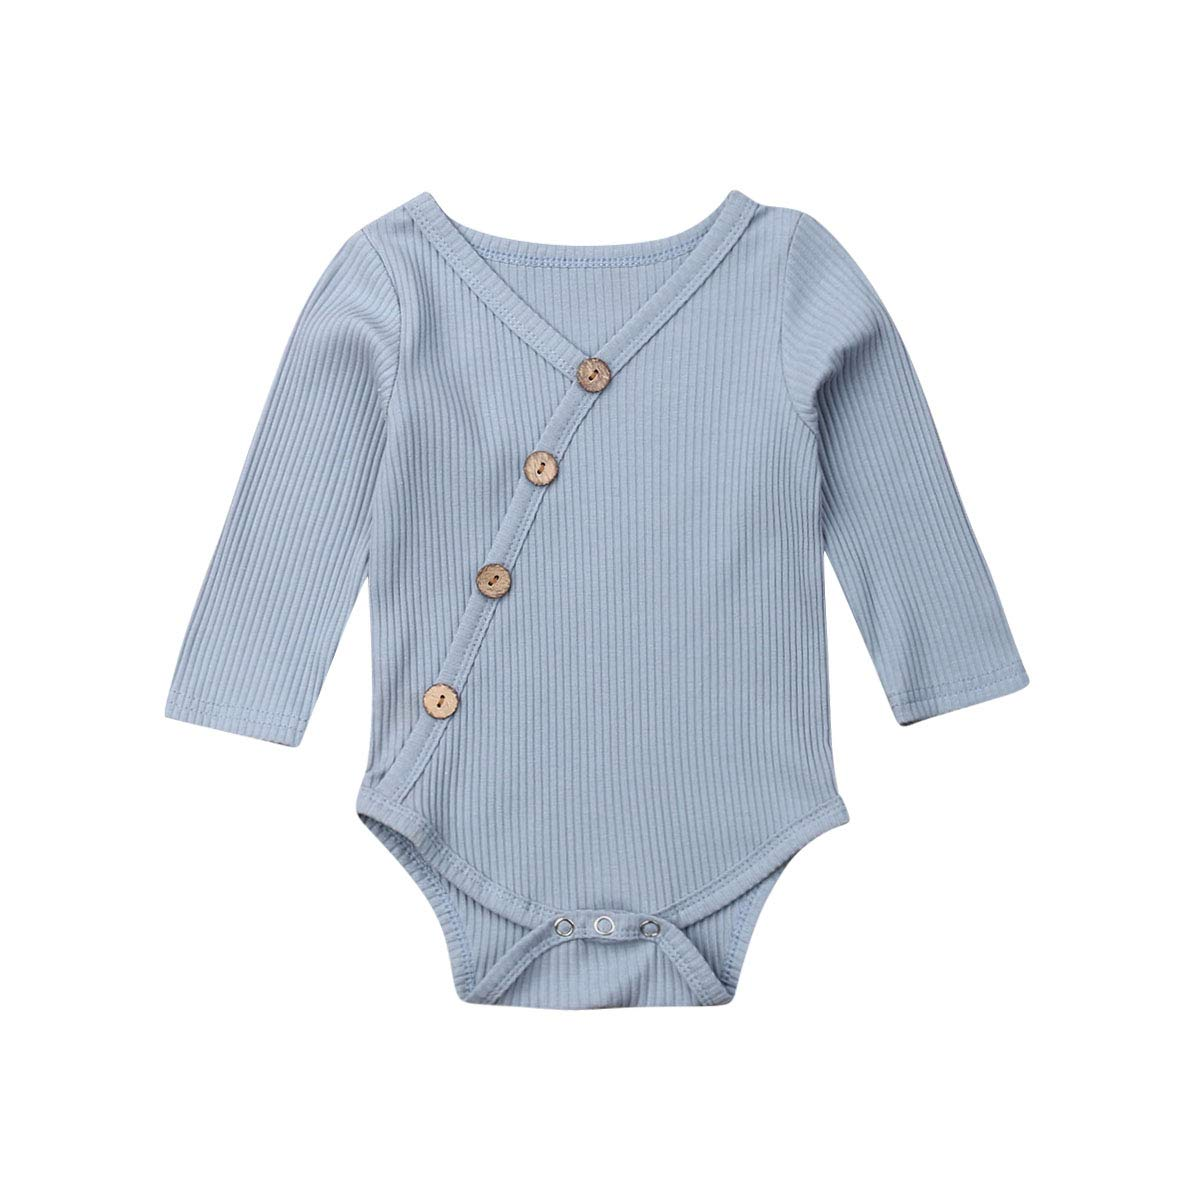 Merqwadd Infant Baby Girl Boy Long Sleeve Knitted Romper Bodysuit Jumpsuit One-Piece Newborn Fall Clothes